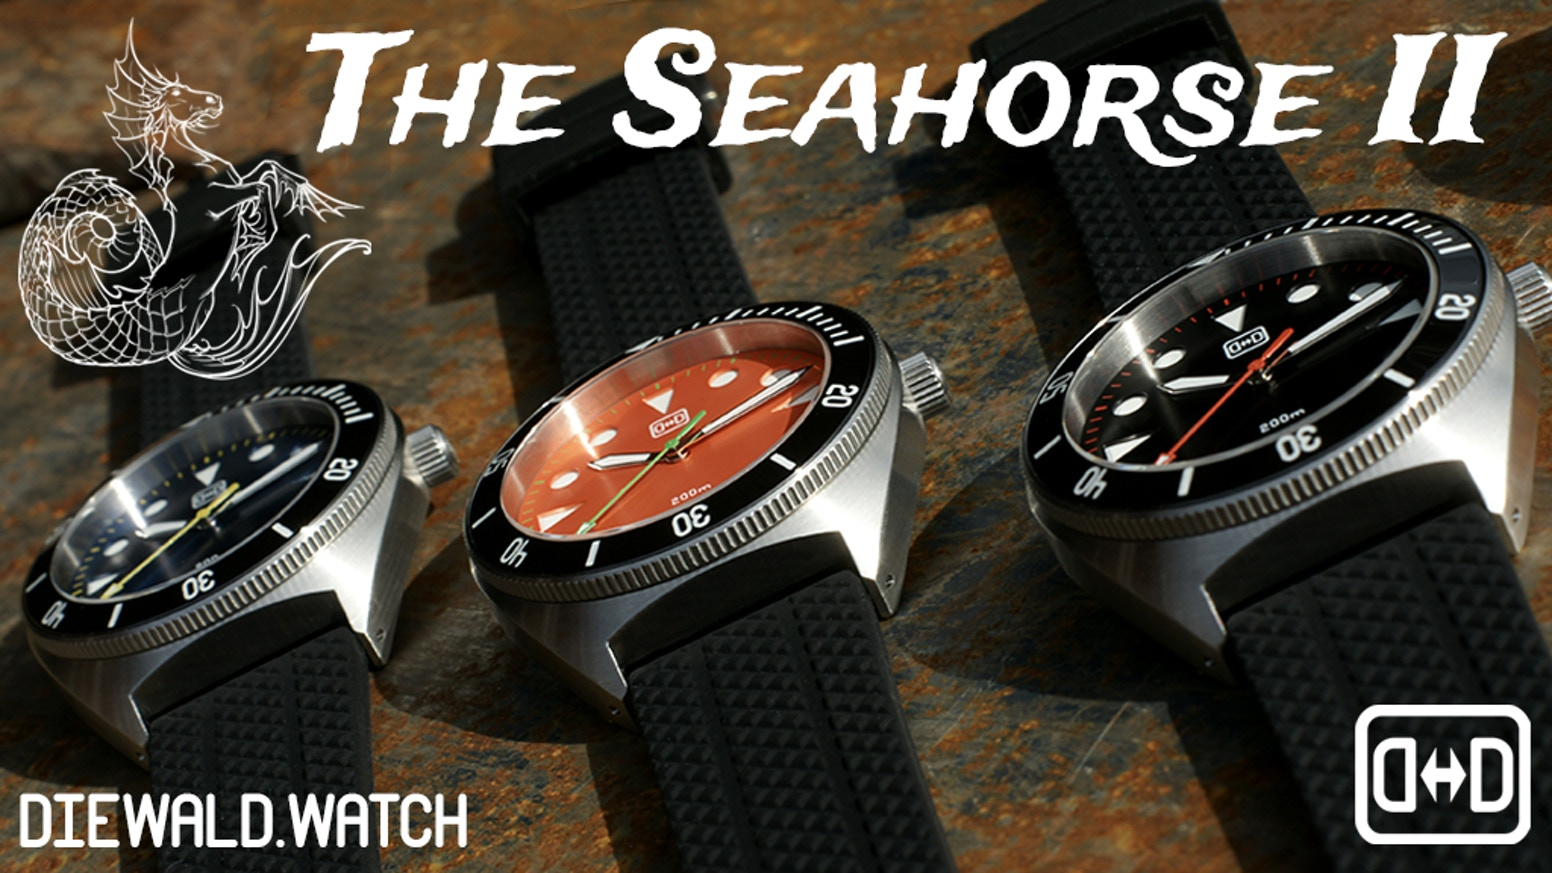 The iconic Seahorse redesigned. A great automatic divers watch of proven quality with fantastic specs at a compellingly low price.